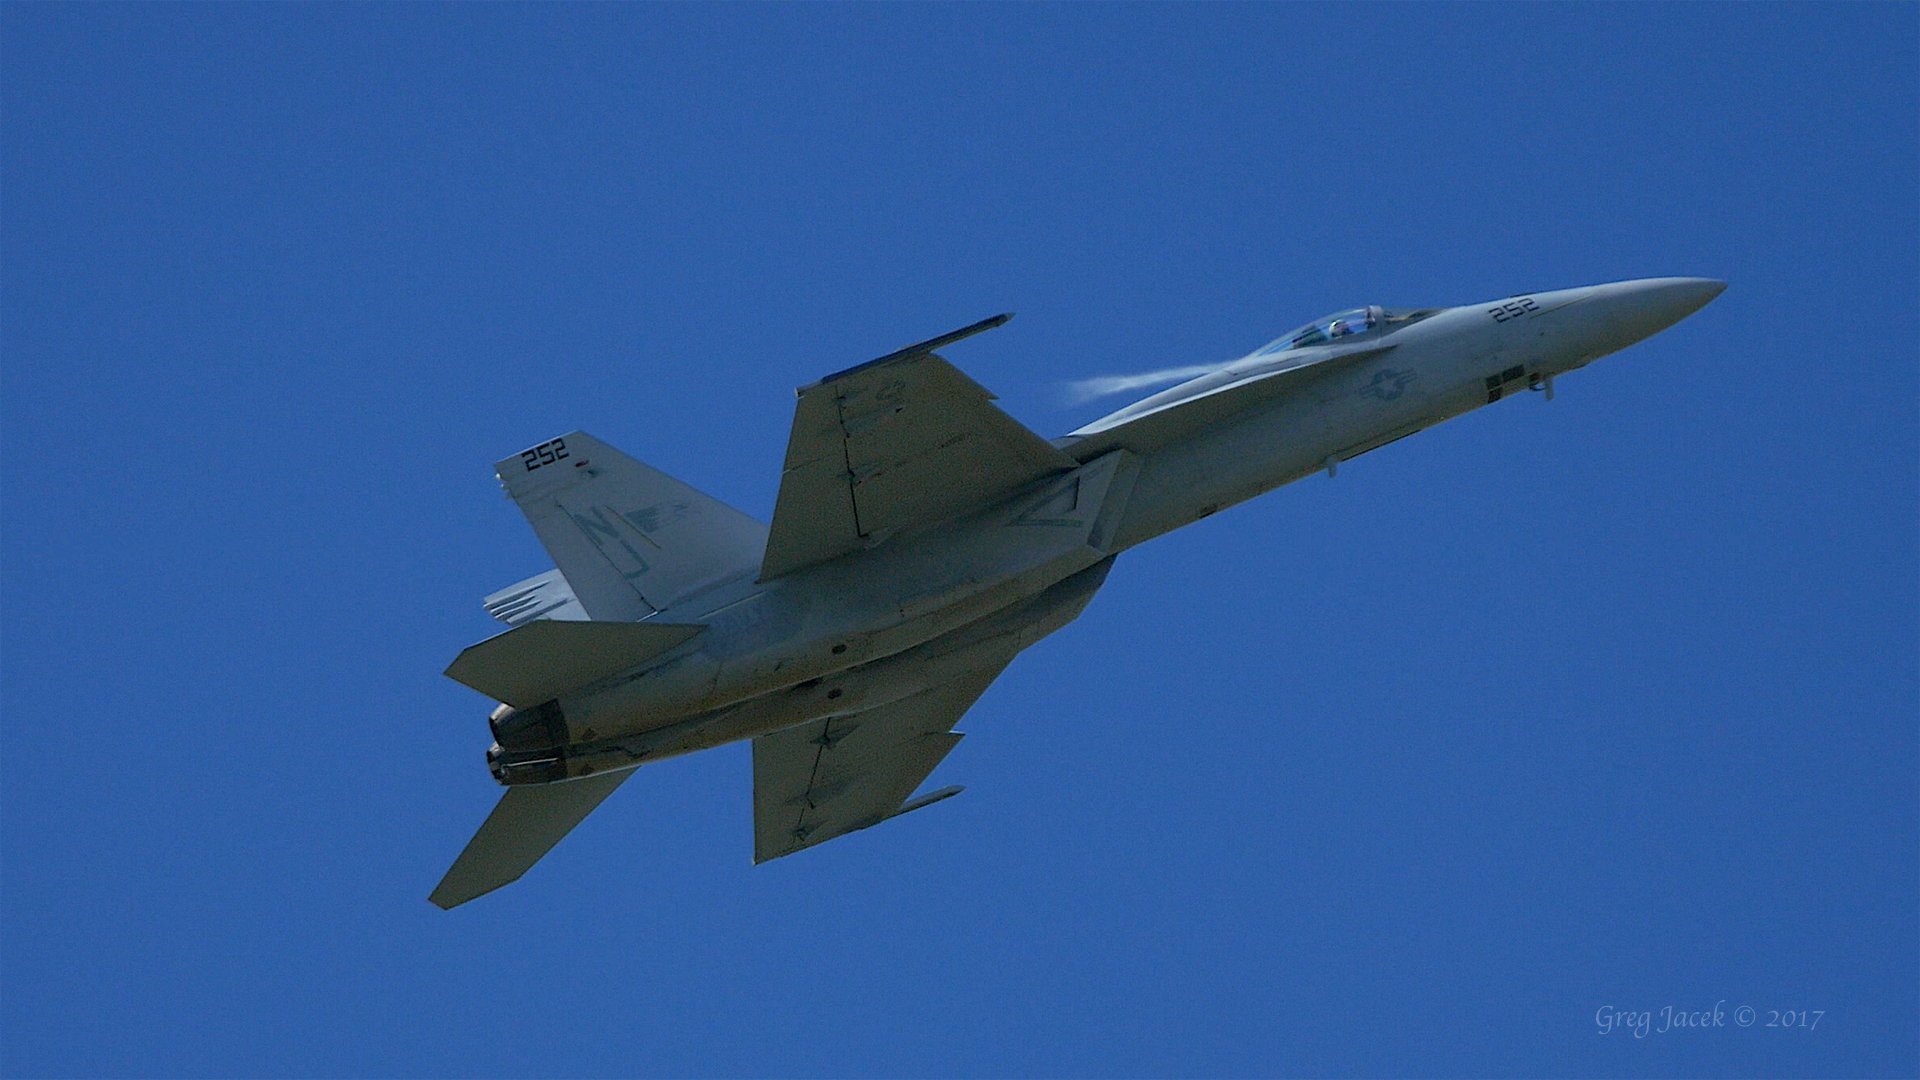 NEW Video Posted: F/A-18F Super Hornet 700 MPH High Speed Pass Fly By in 5.1 Surround Sound (4K)